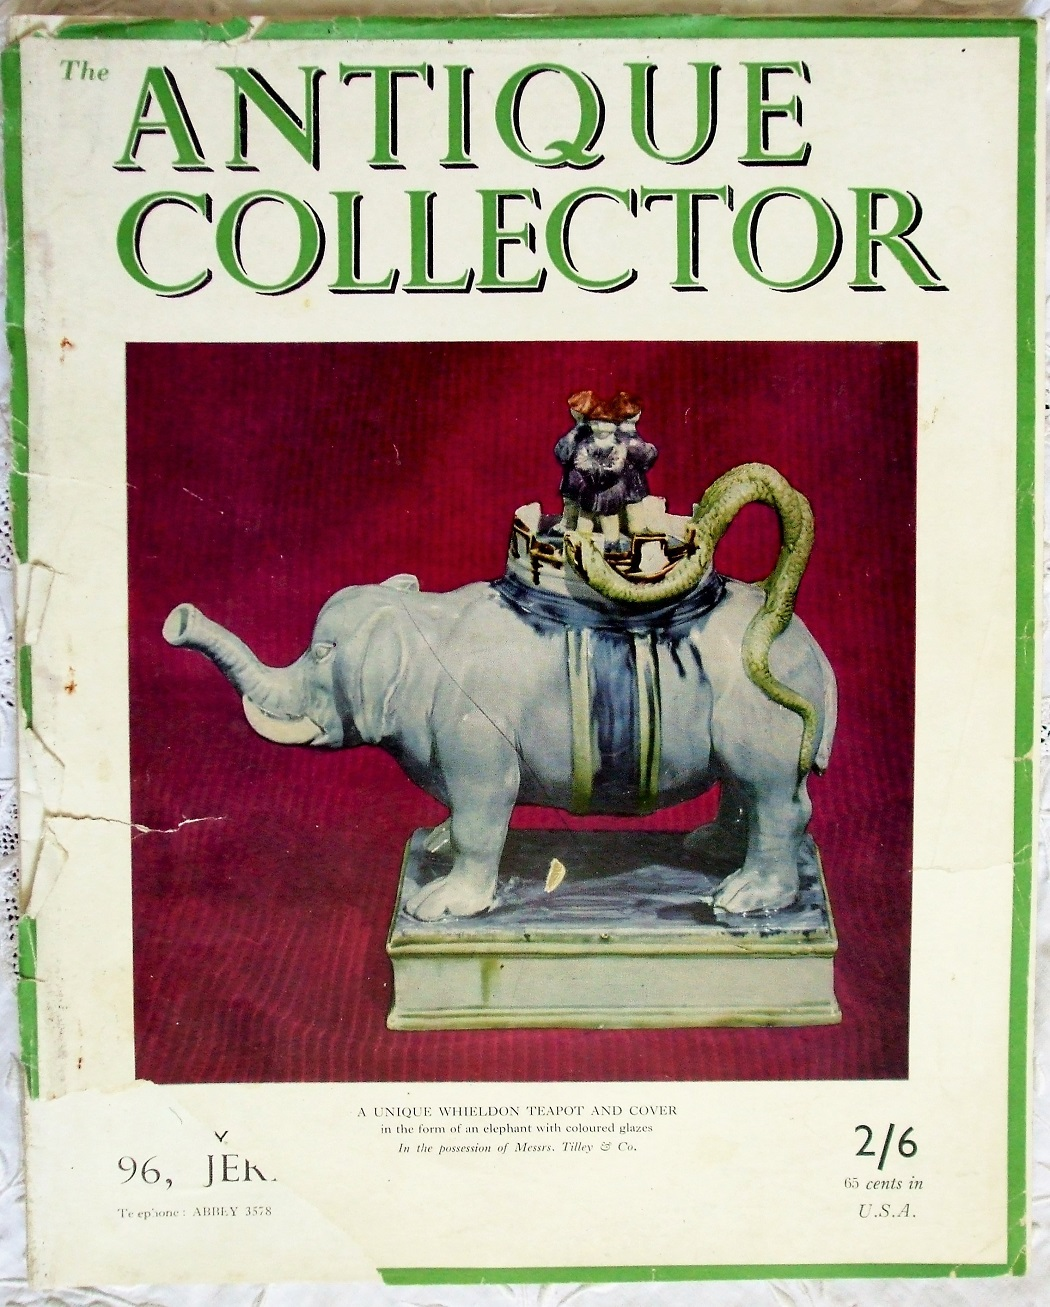 Antique Collector January-February 1950